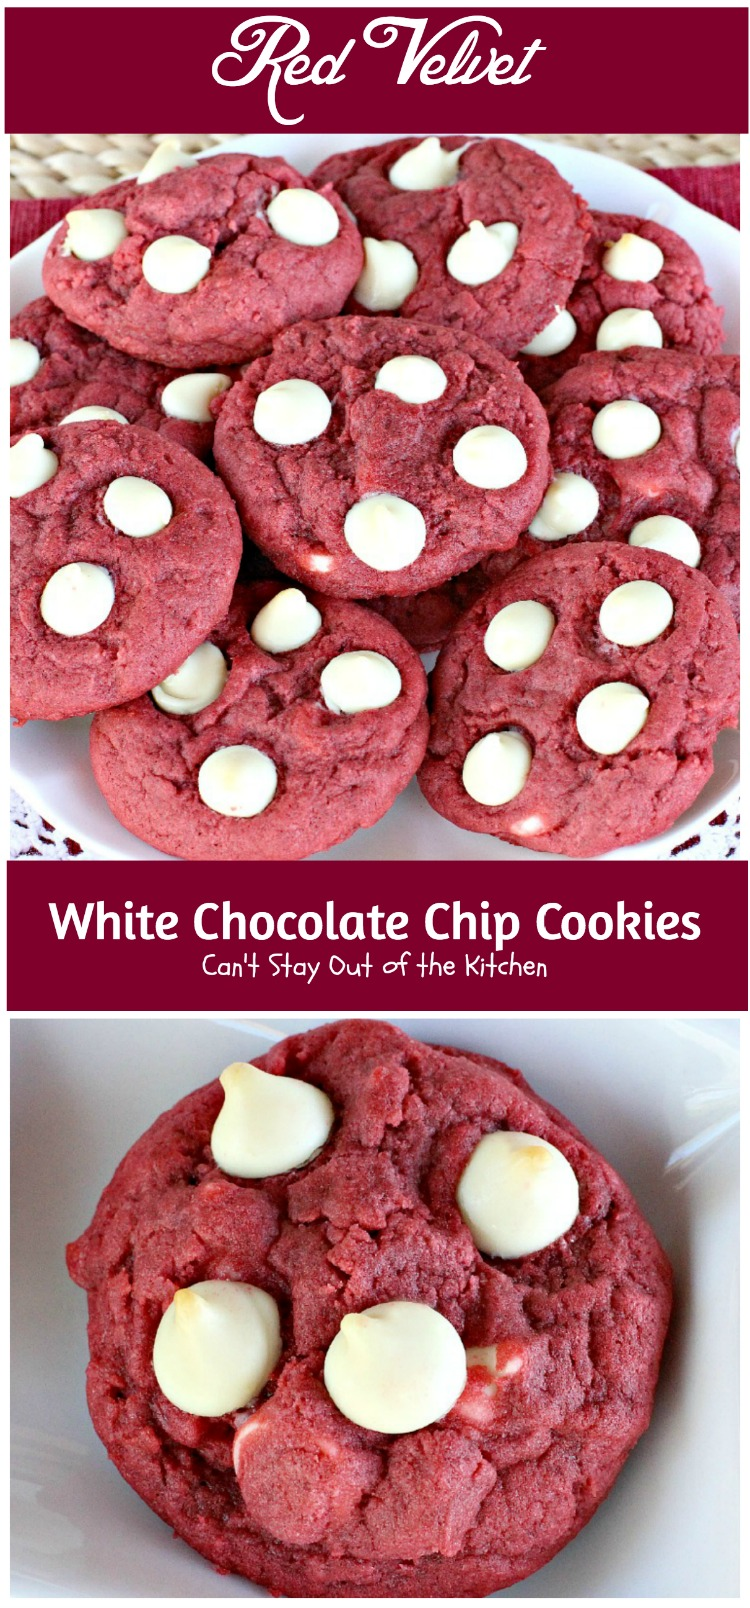 Red Velvet White Chocolate Chip Cookies - Can't Stay Out of the ...